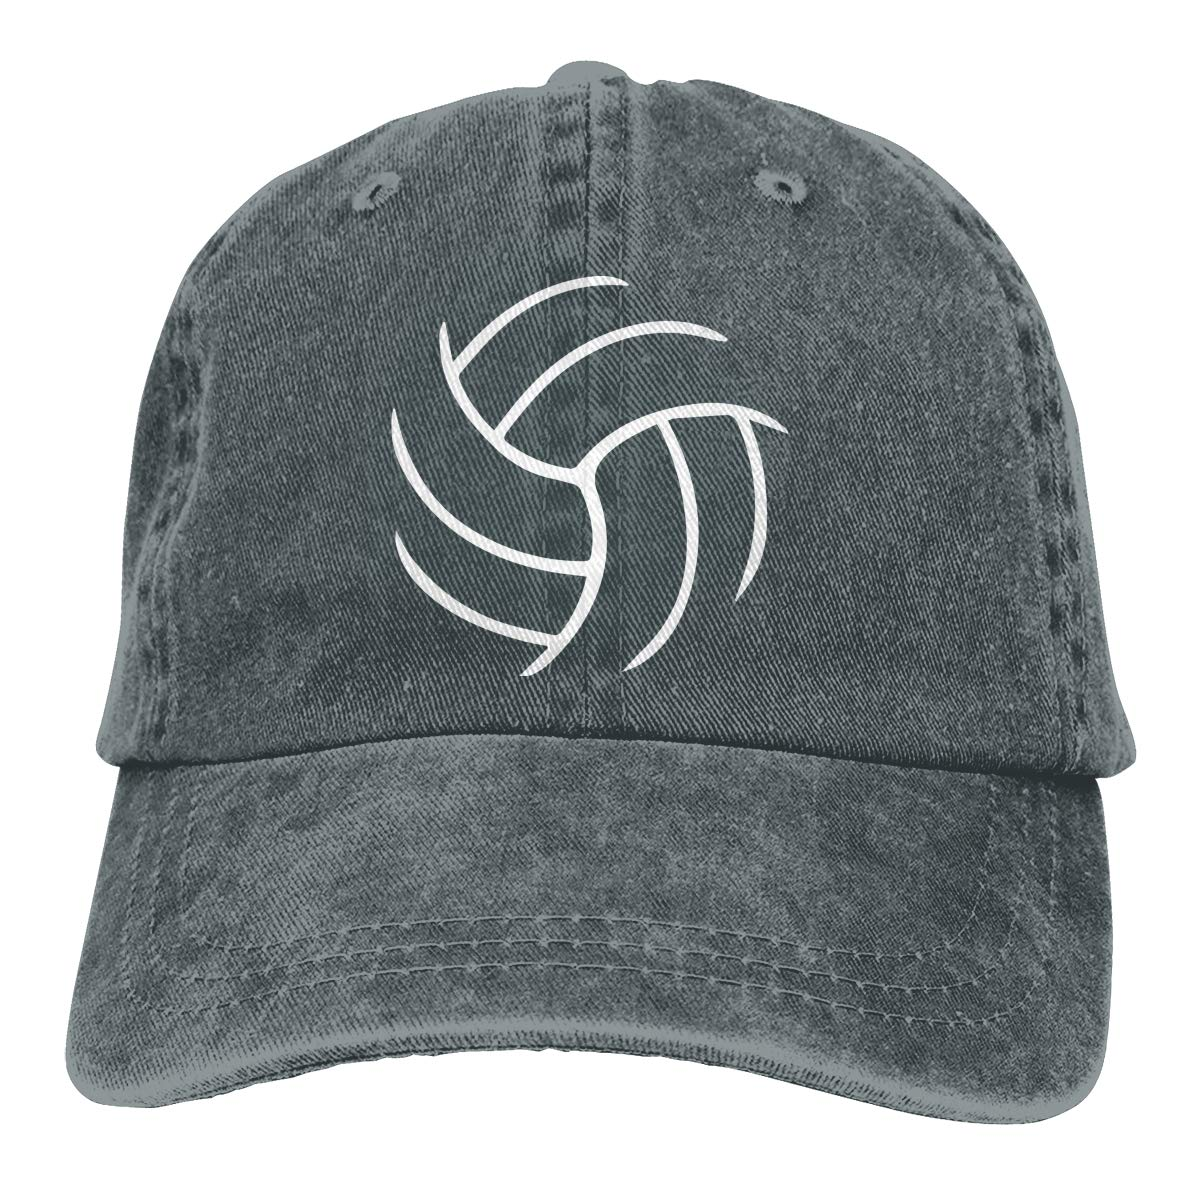 TBVS 77 Men Women Washed Yarn-Dyed Denim Baseball Cap Volleyball Headwear